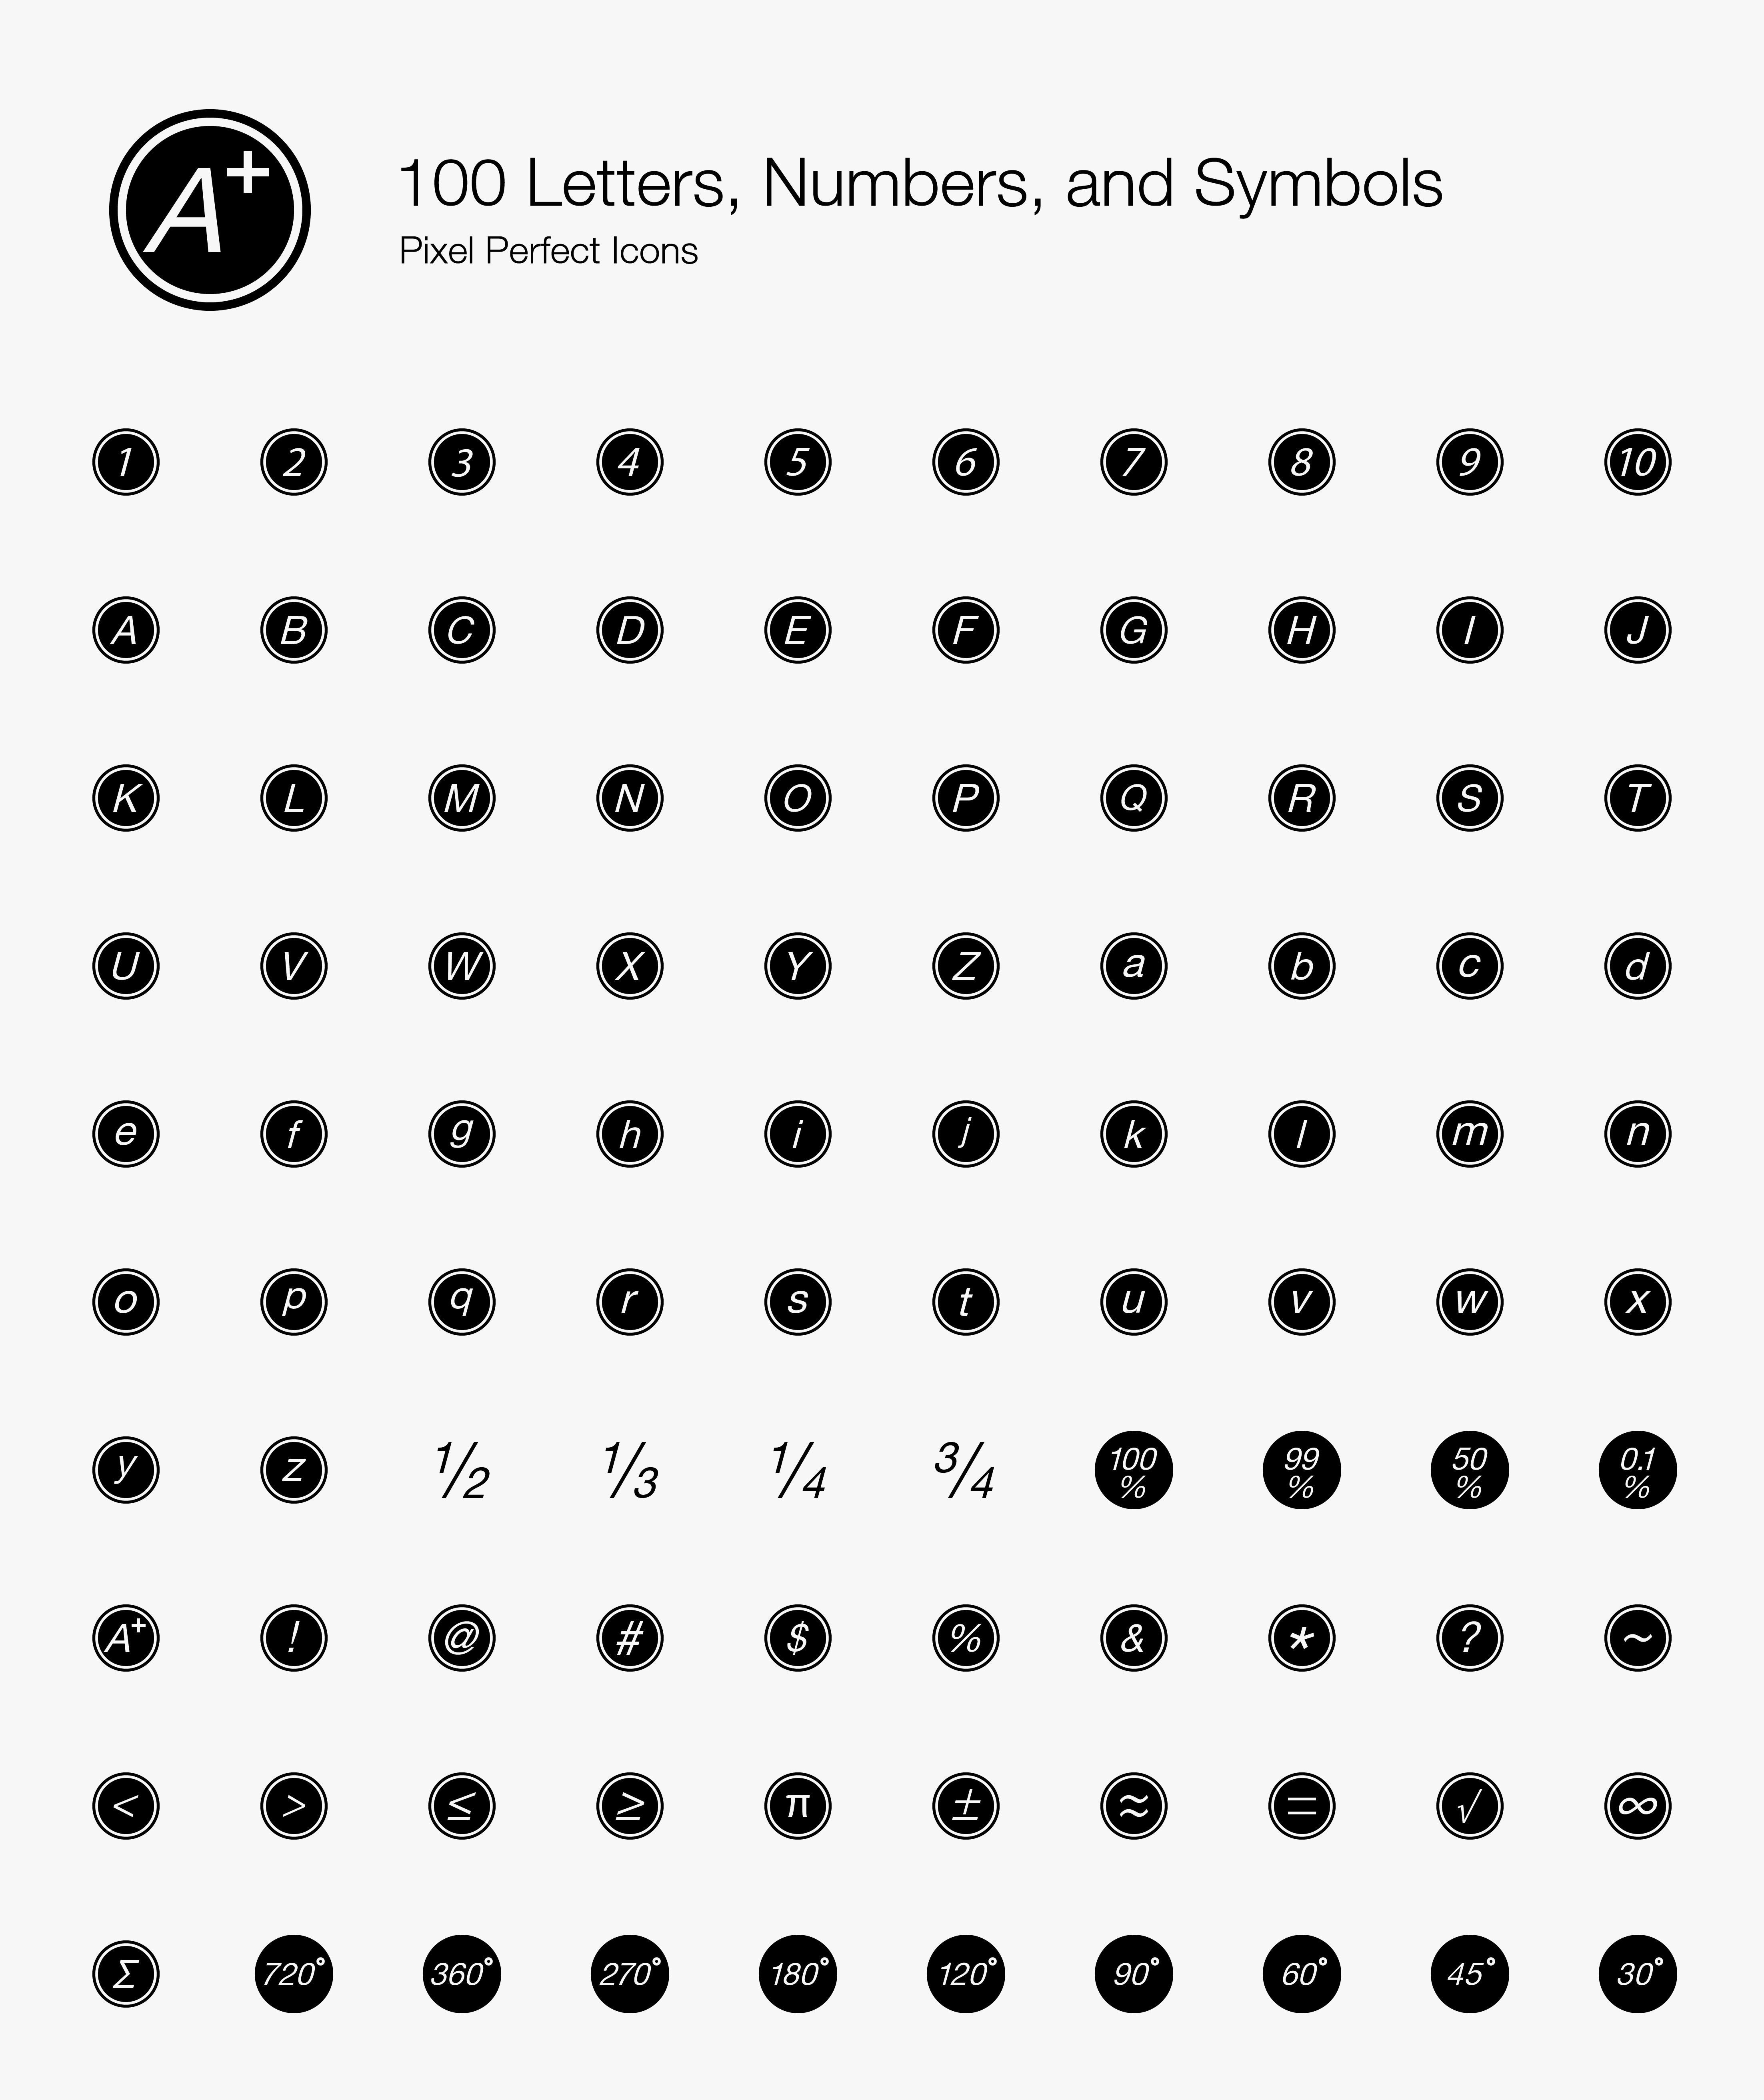 100 Letters, Numbers, and Symbols Pixel Perfect Icons